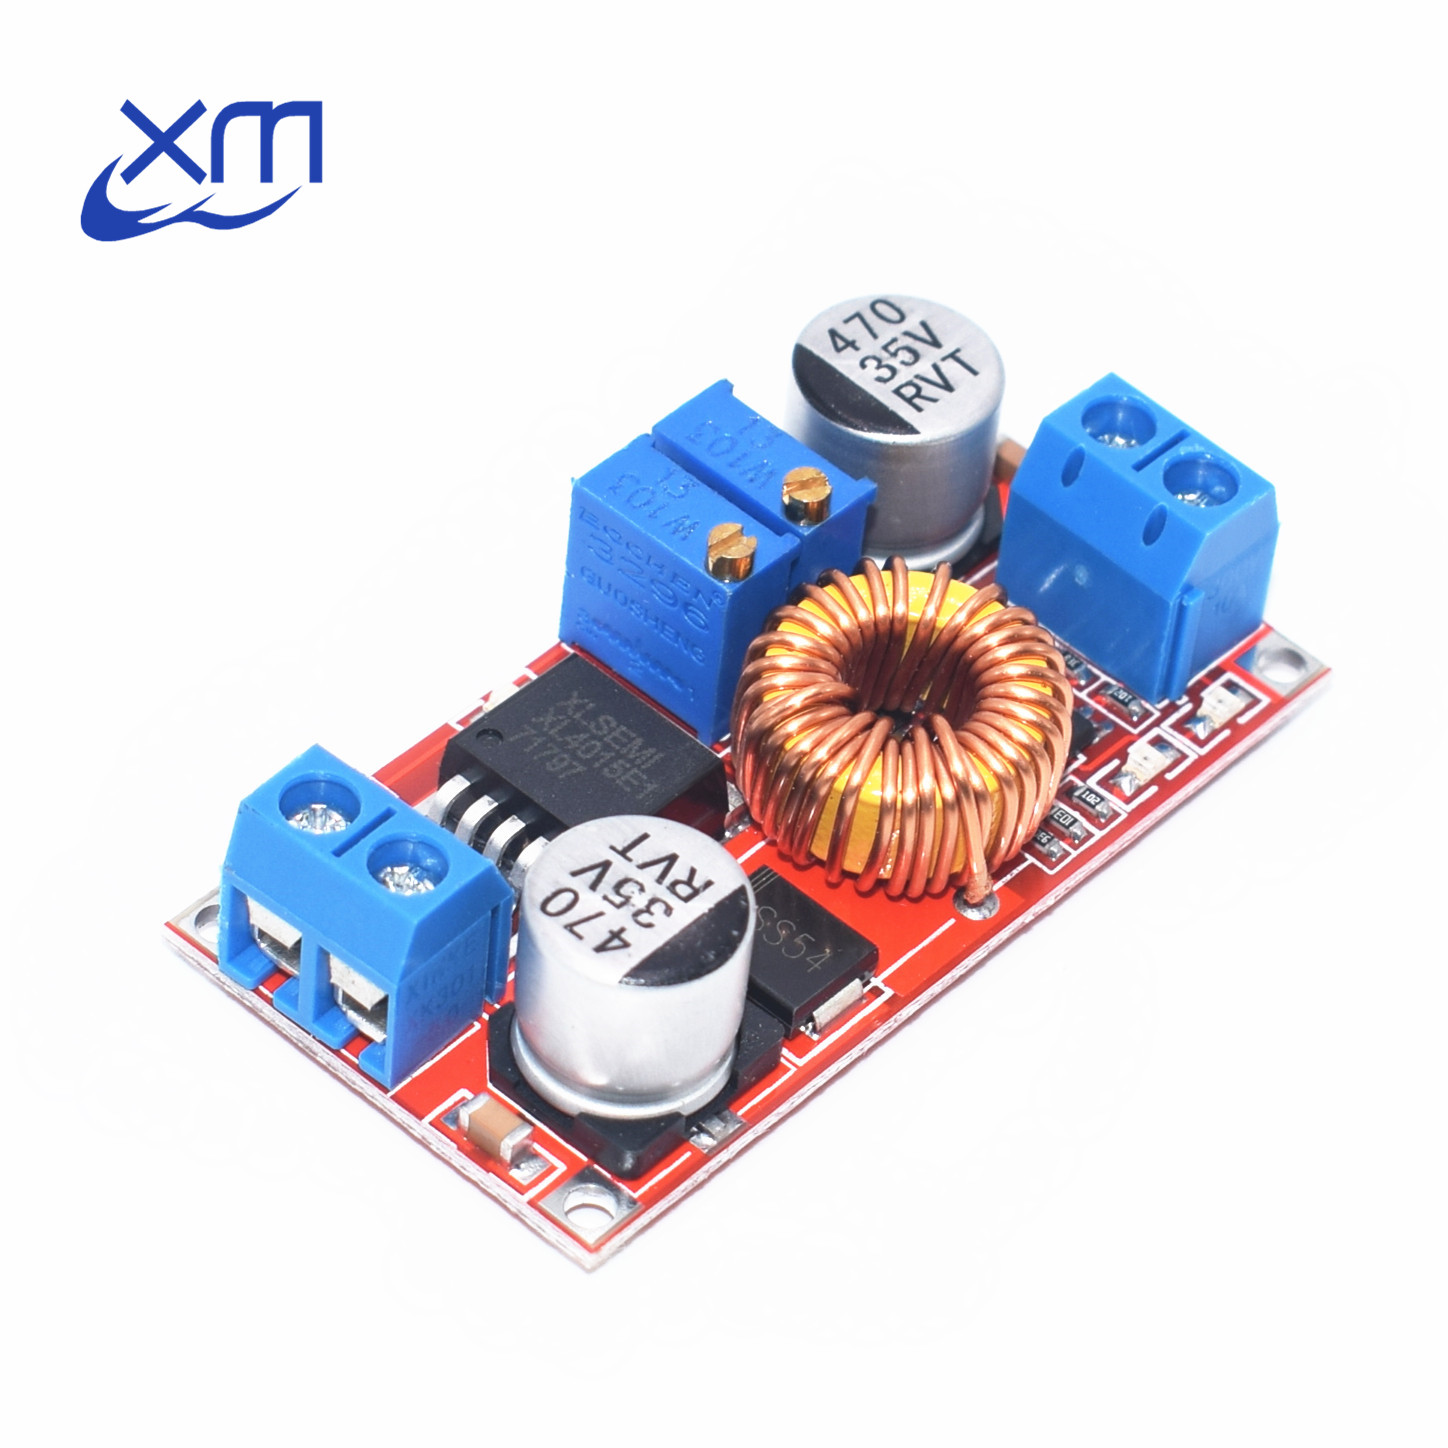 5A DC to DC CC CV Lithium Battery Step down Charging Board Led Power Converter Lithium Charger Step Down Module hong XL40155A DC to DC CC CV Lithium Battery Step down Charging Board Led Power Converter Lithium Charger Step Down Module hong XL4015